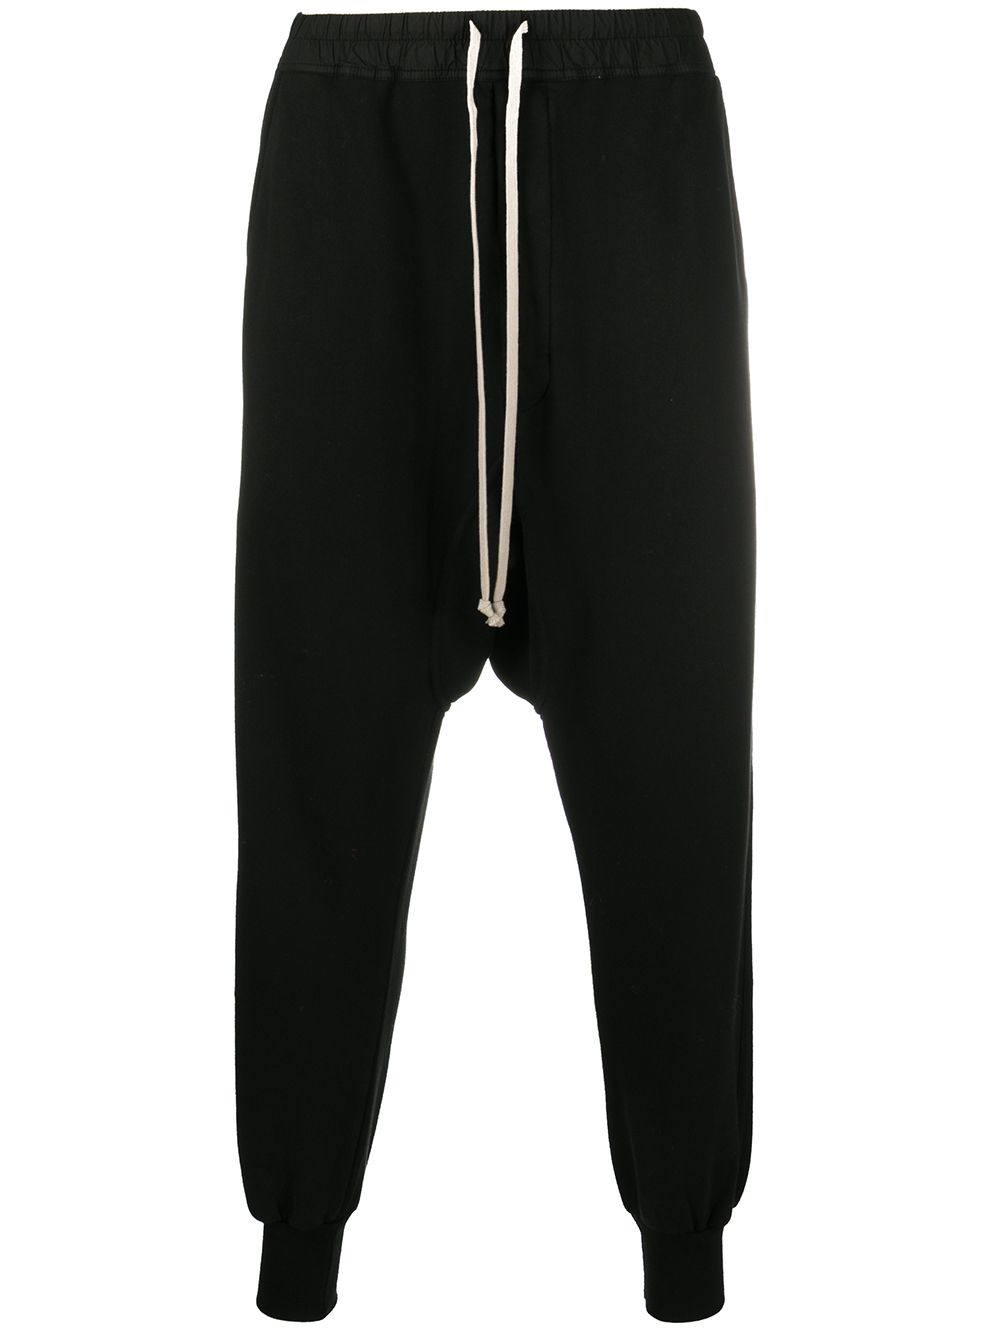 RICK OWENS DRKSHDW Prisoner Drawstring Sweatpants Black